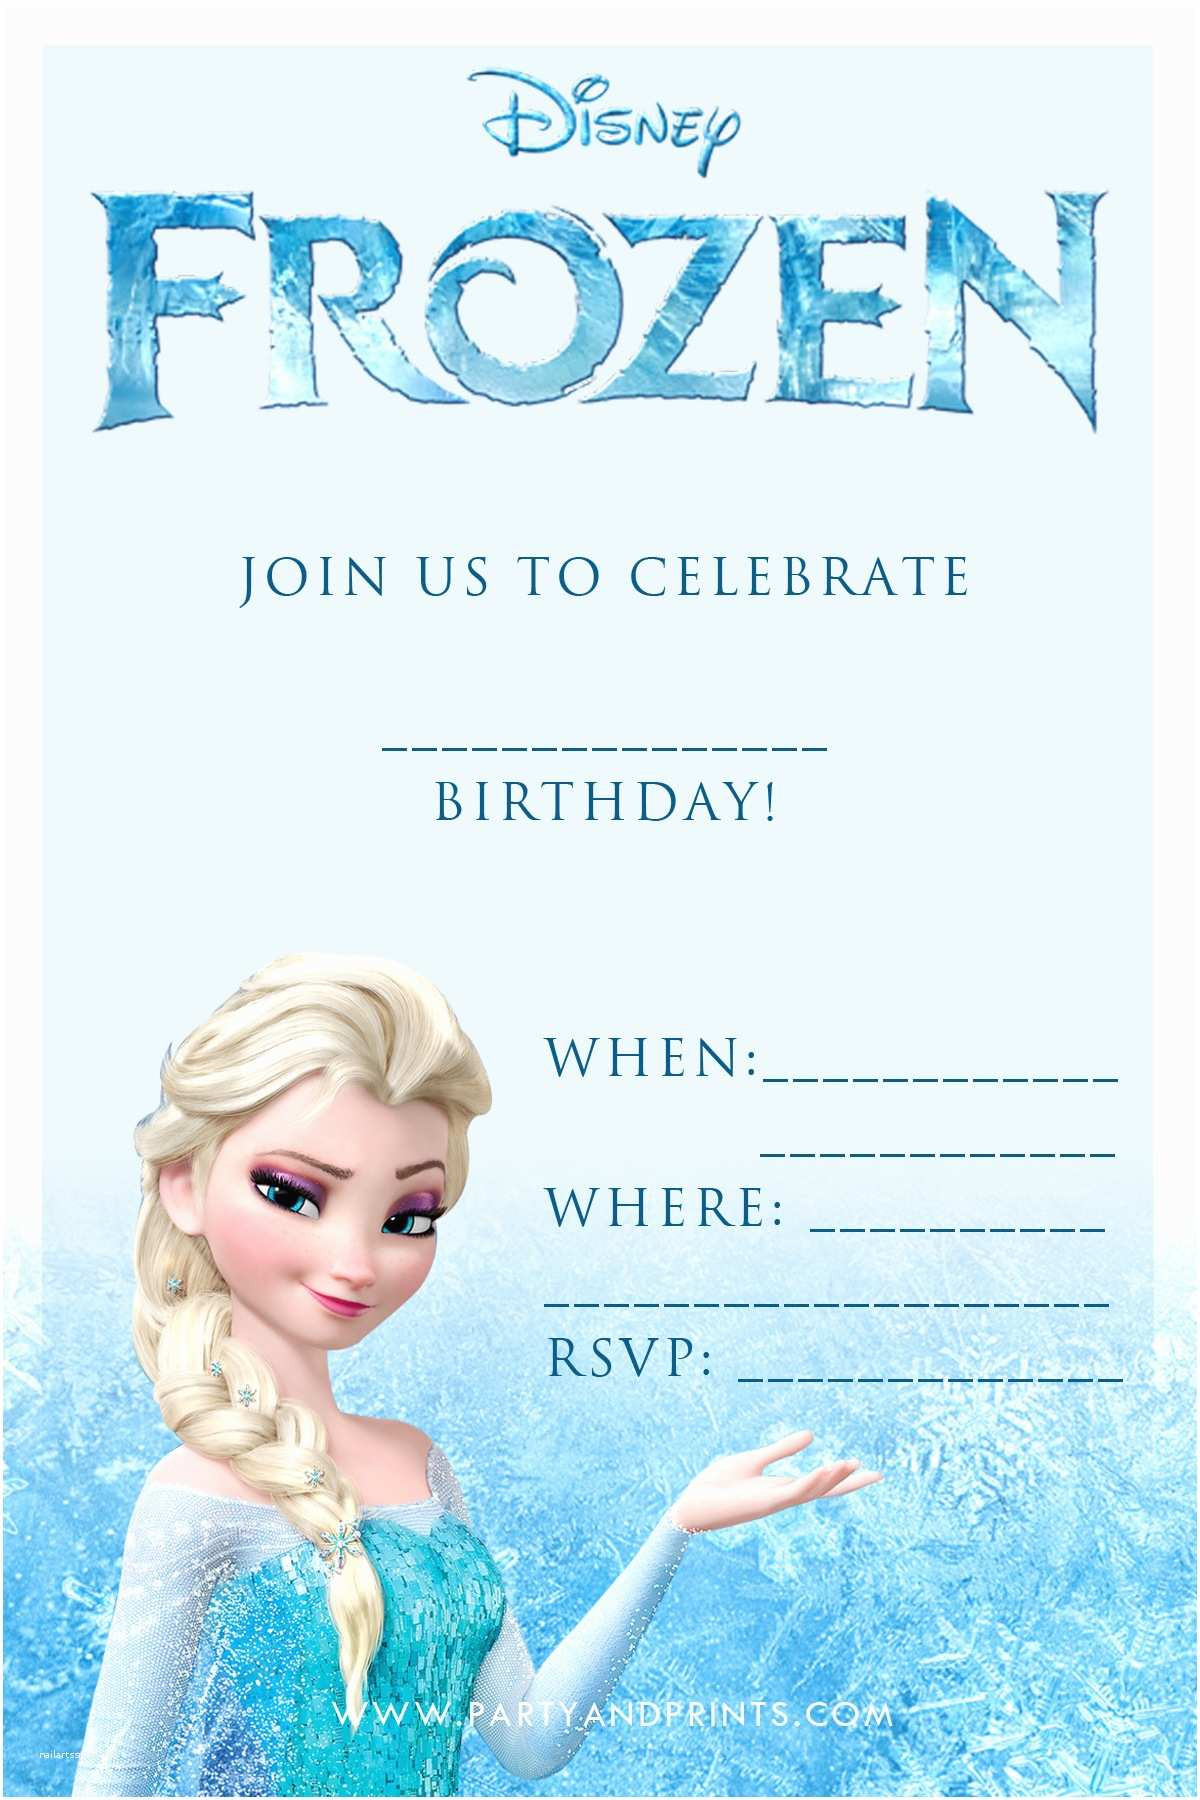 Frozen Printable Invitation Disney Birthday Invitations Free Printable Disney Frozen